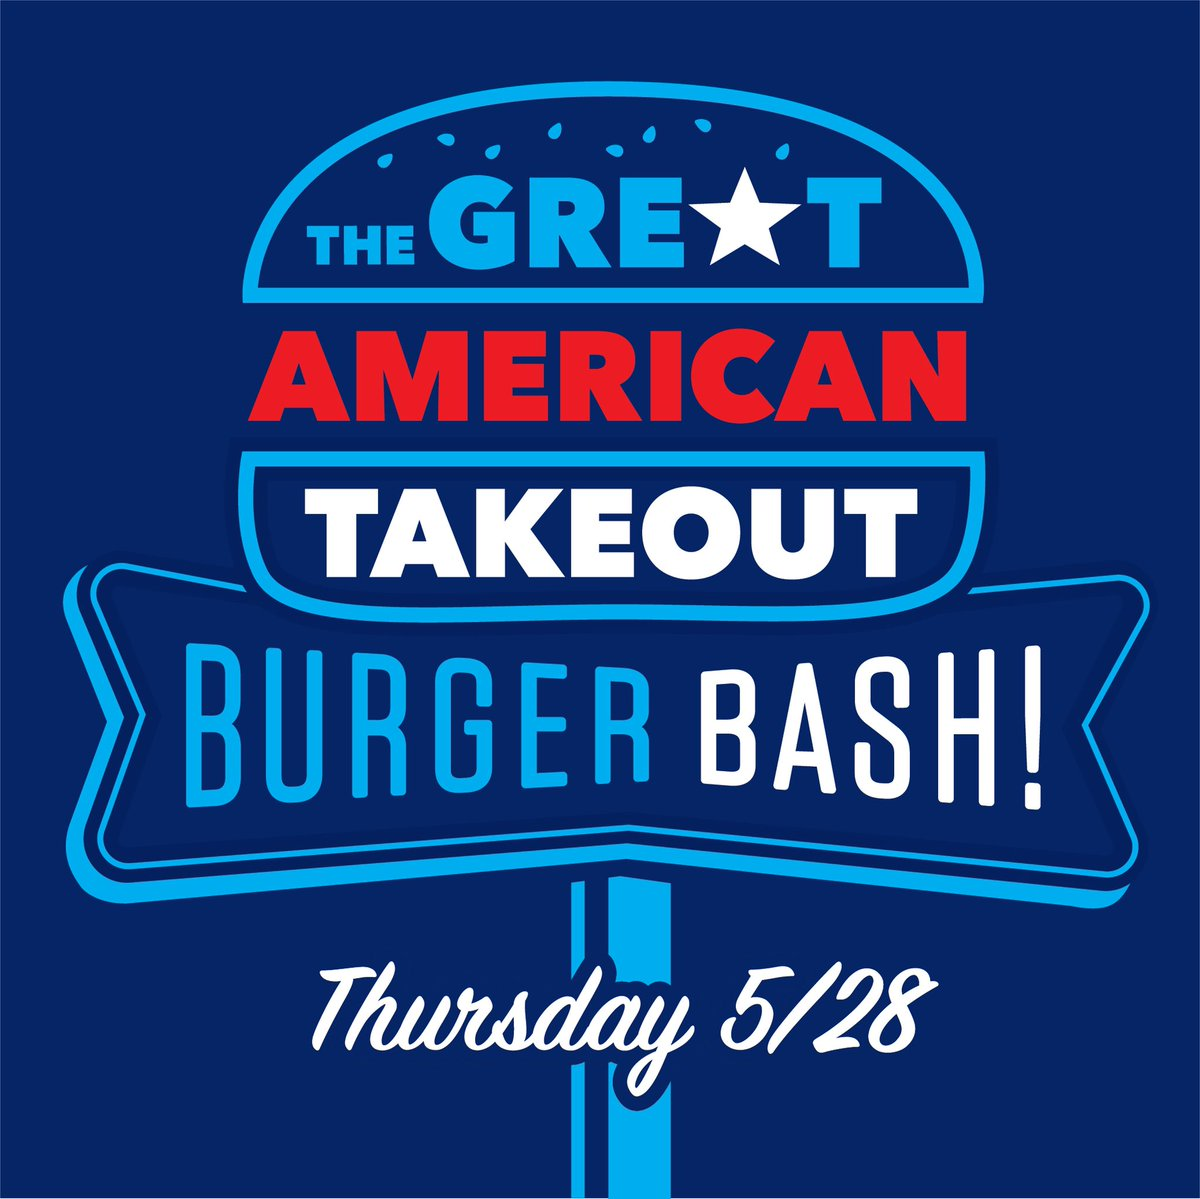 It's a beautiful day for a burger! Celebrate #NationalHamburgerDay 🍔 with us and @TheGATakeout to help support folks in the food industry. Post a shot of your Barrel Cheeseburger To-Go on May 28th, and you'll be entered to win $2600 in burger bucks! 🍔🍔🍔🍔